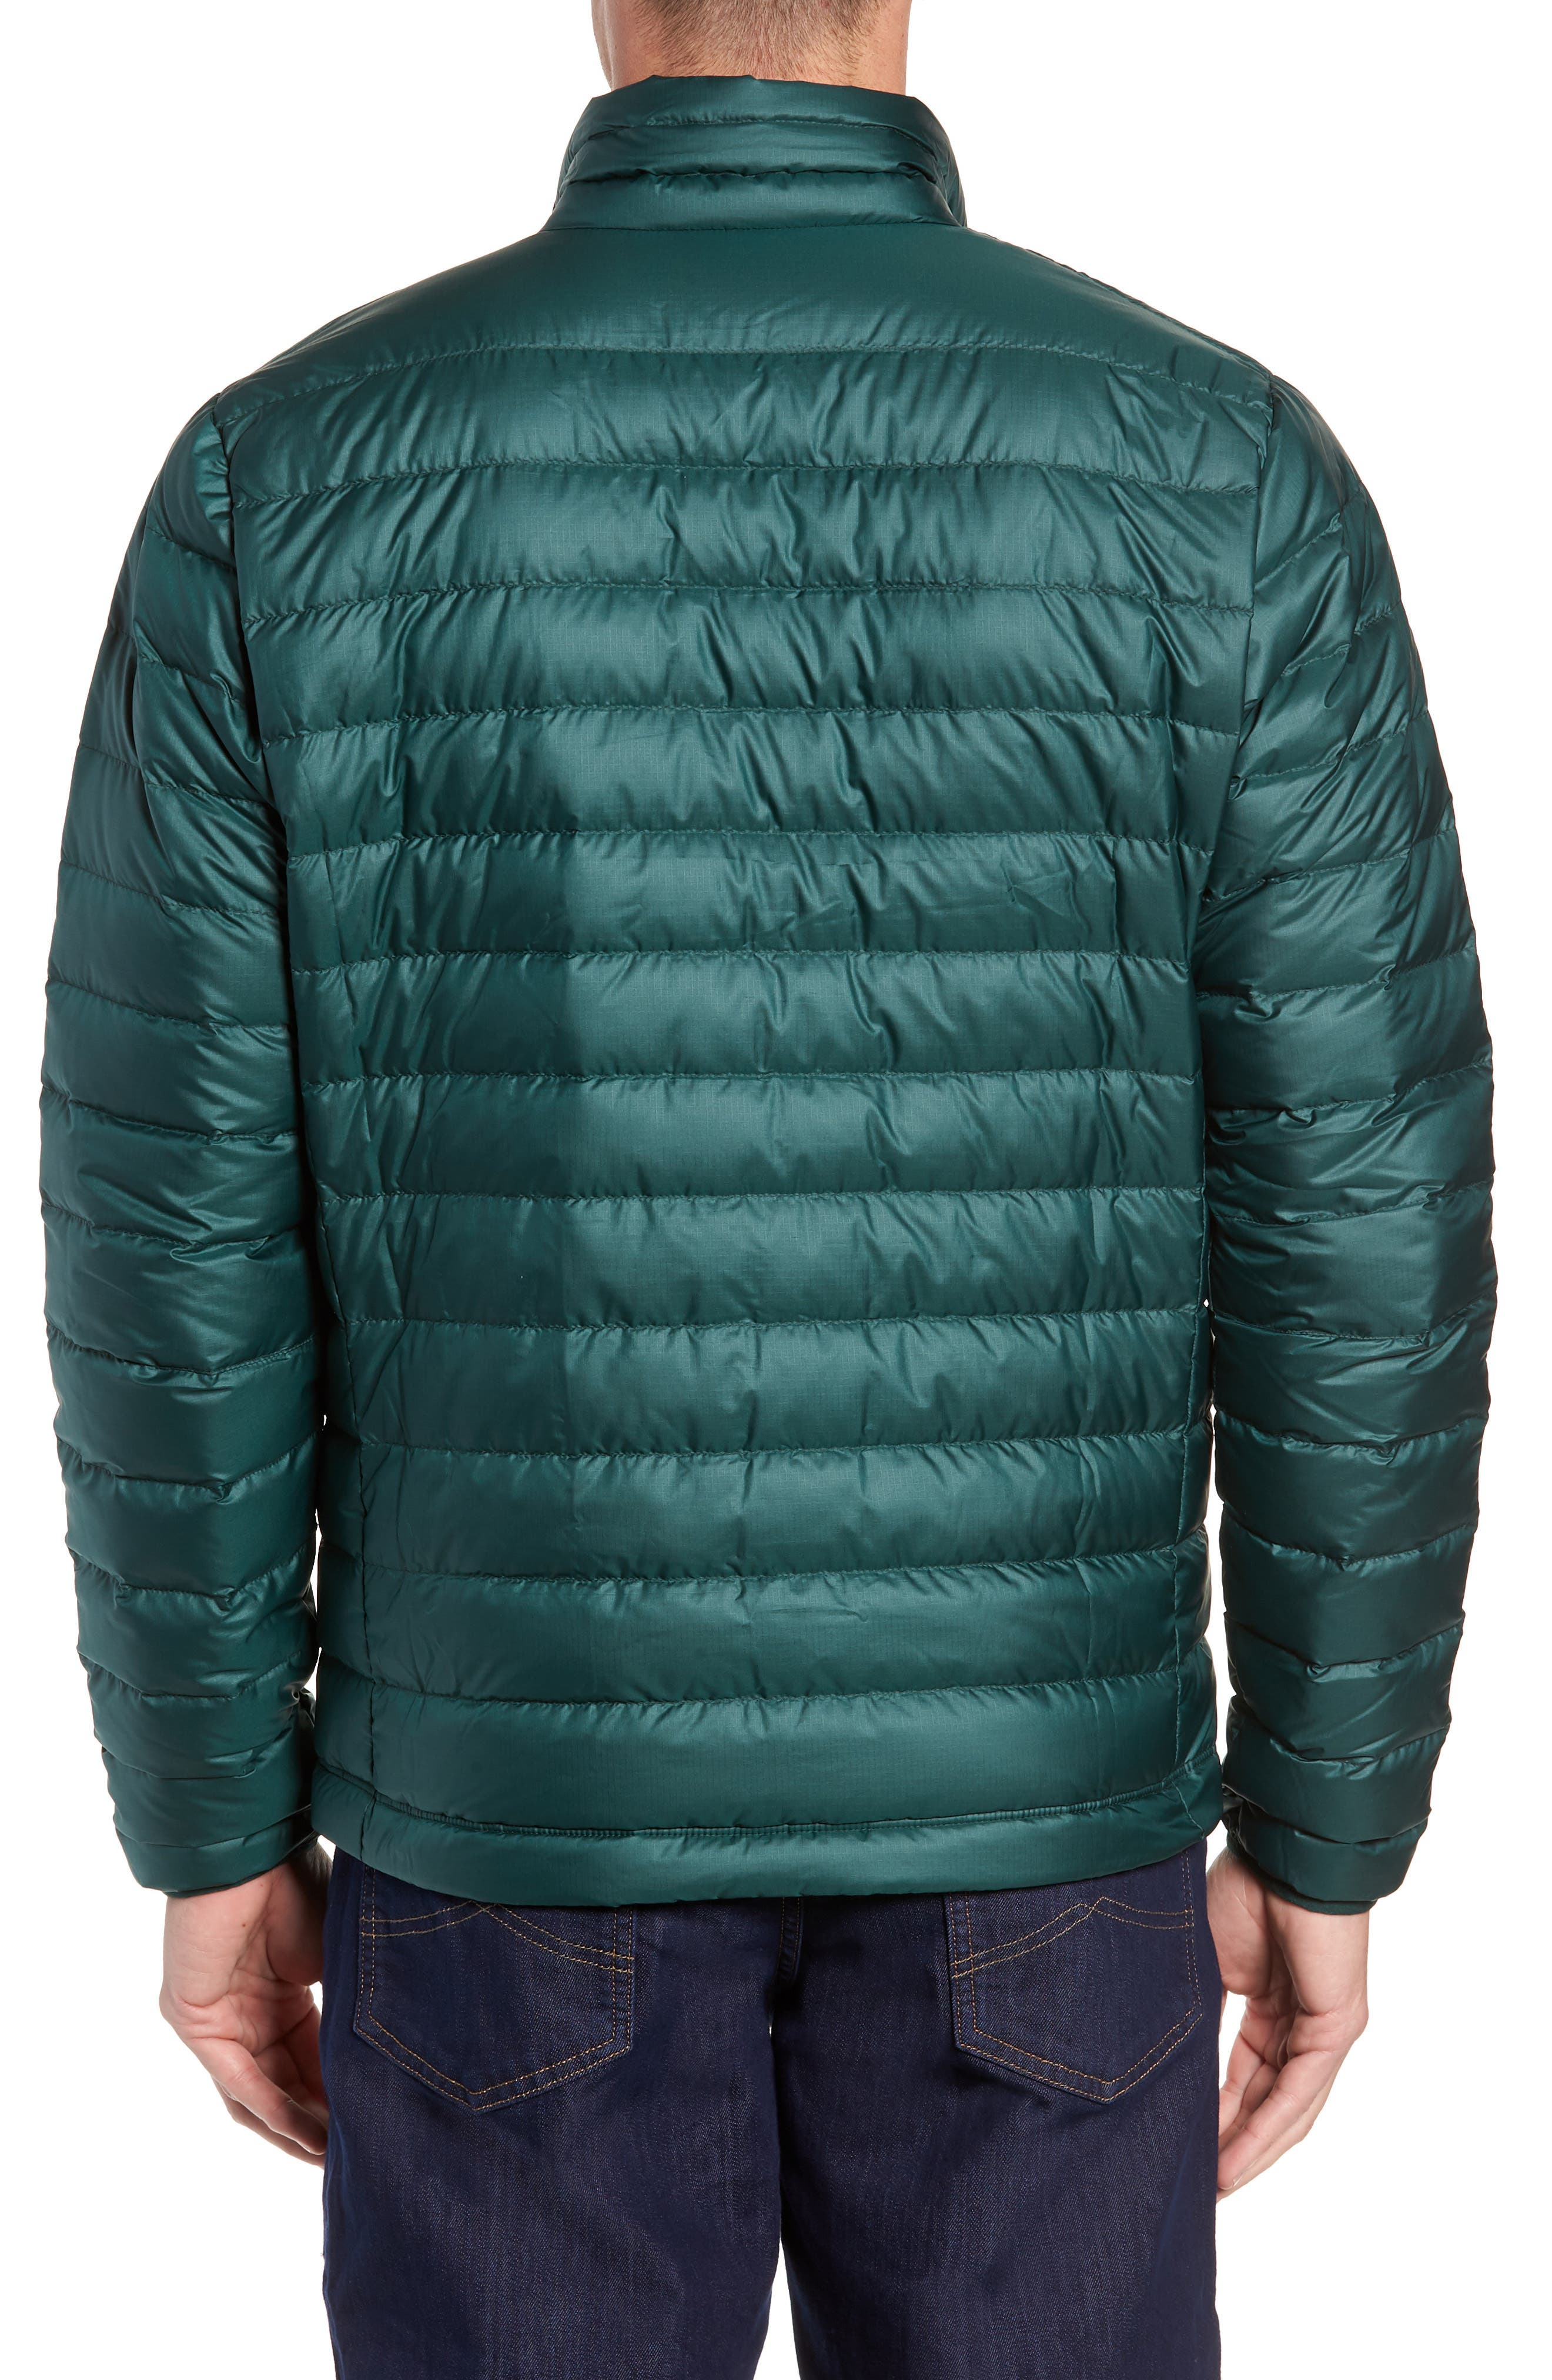 Water Repellent Down Jacket,                             Alternate thumbnail 2, color,                             MICRO GREEN